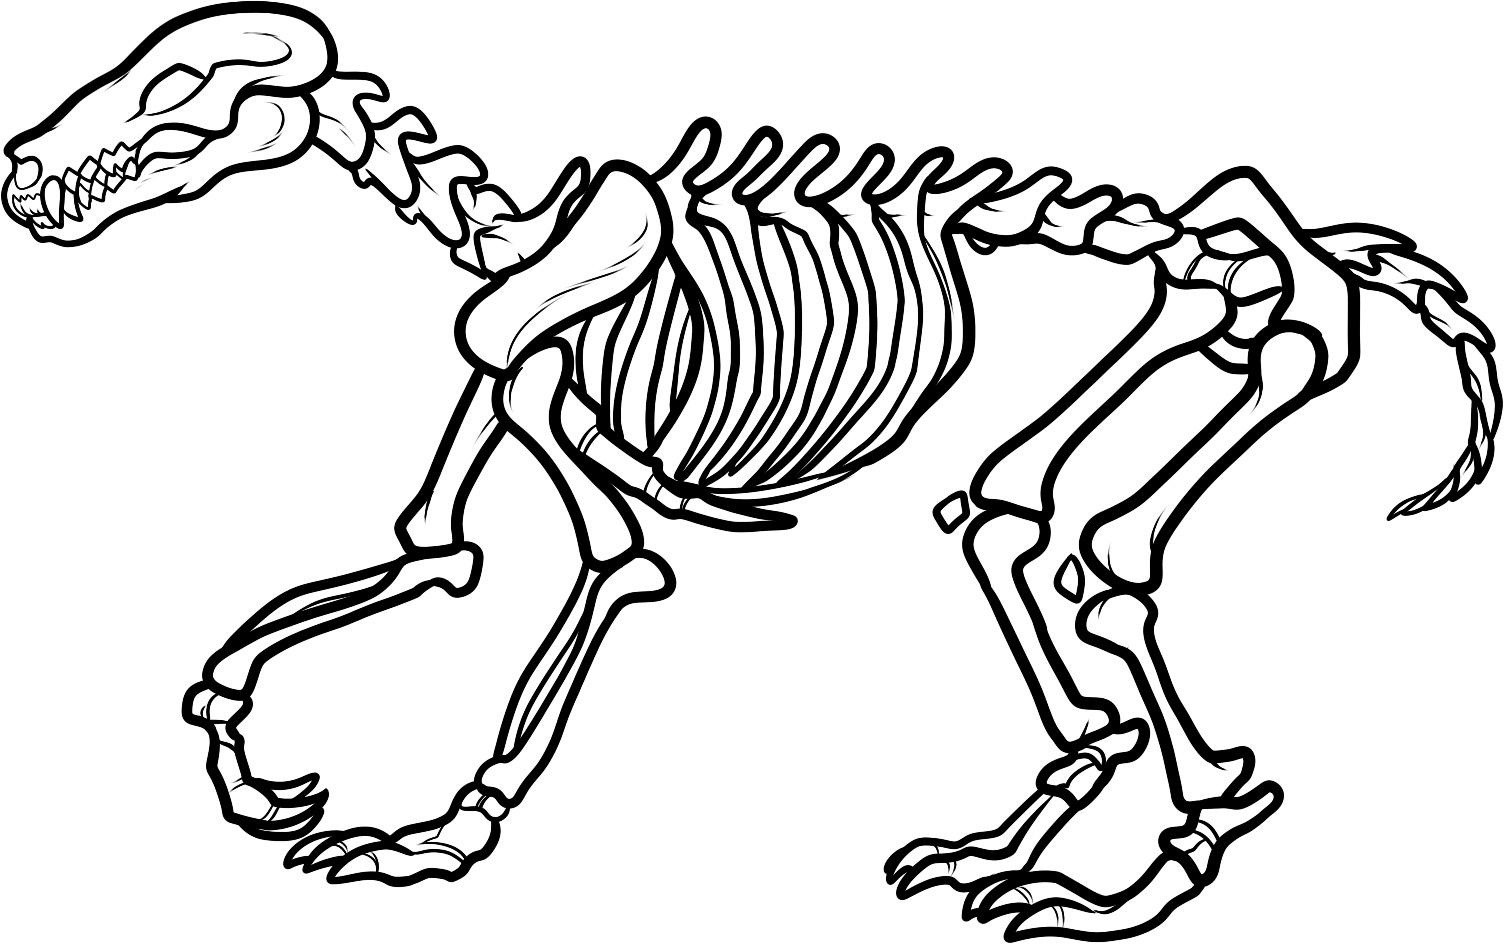 Bone clipart coloring page. Dinosaur bones pages and